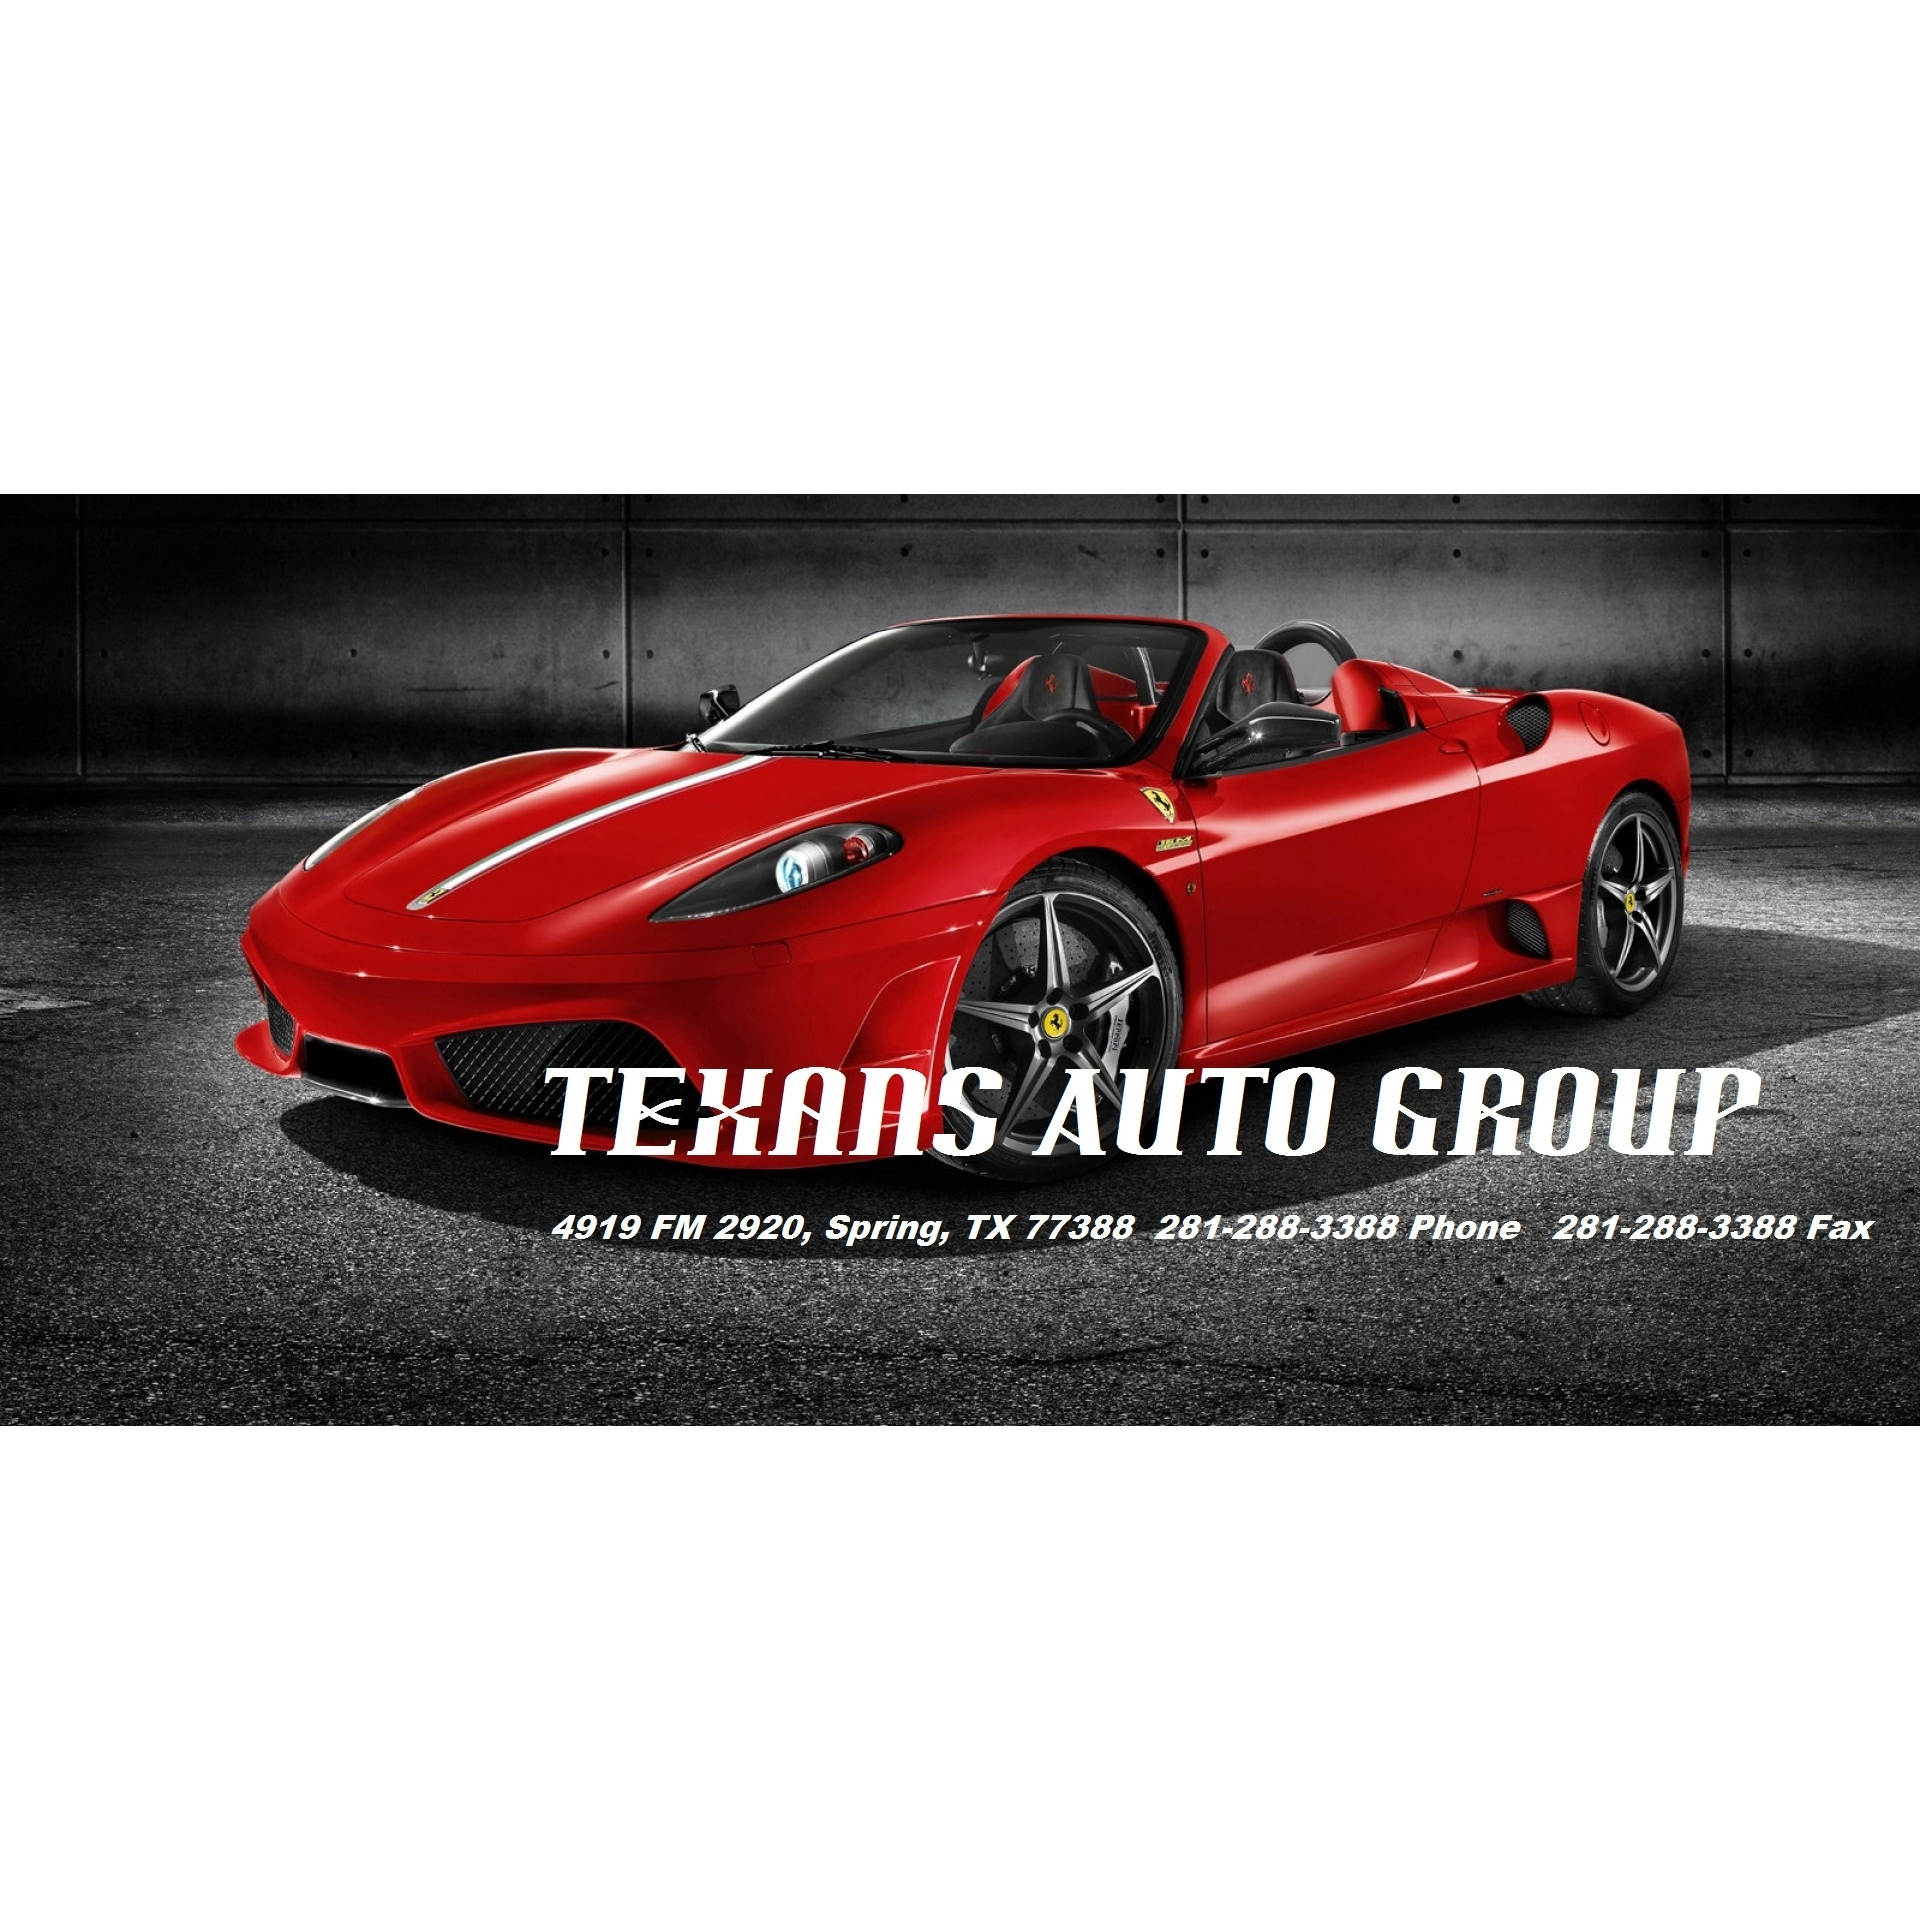 Texans Auto Group